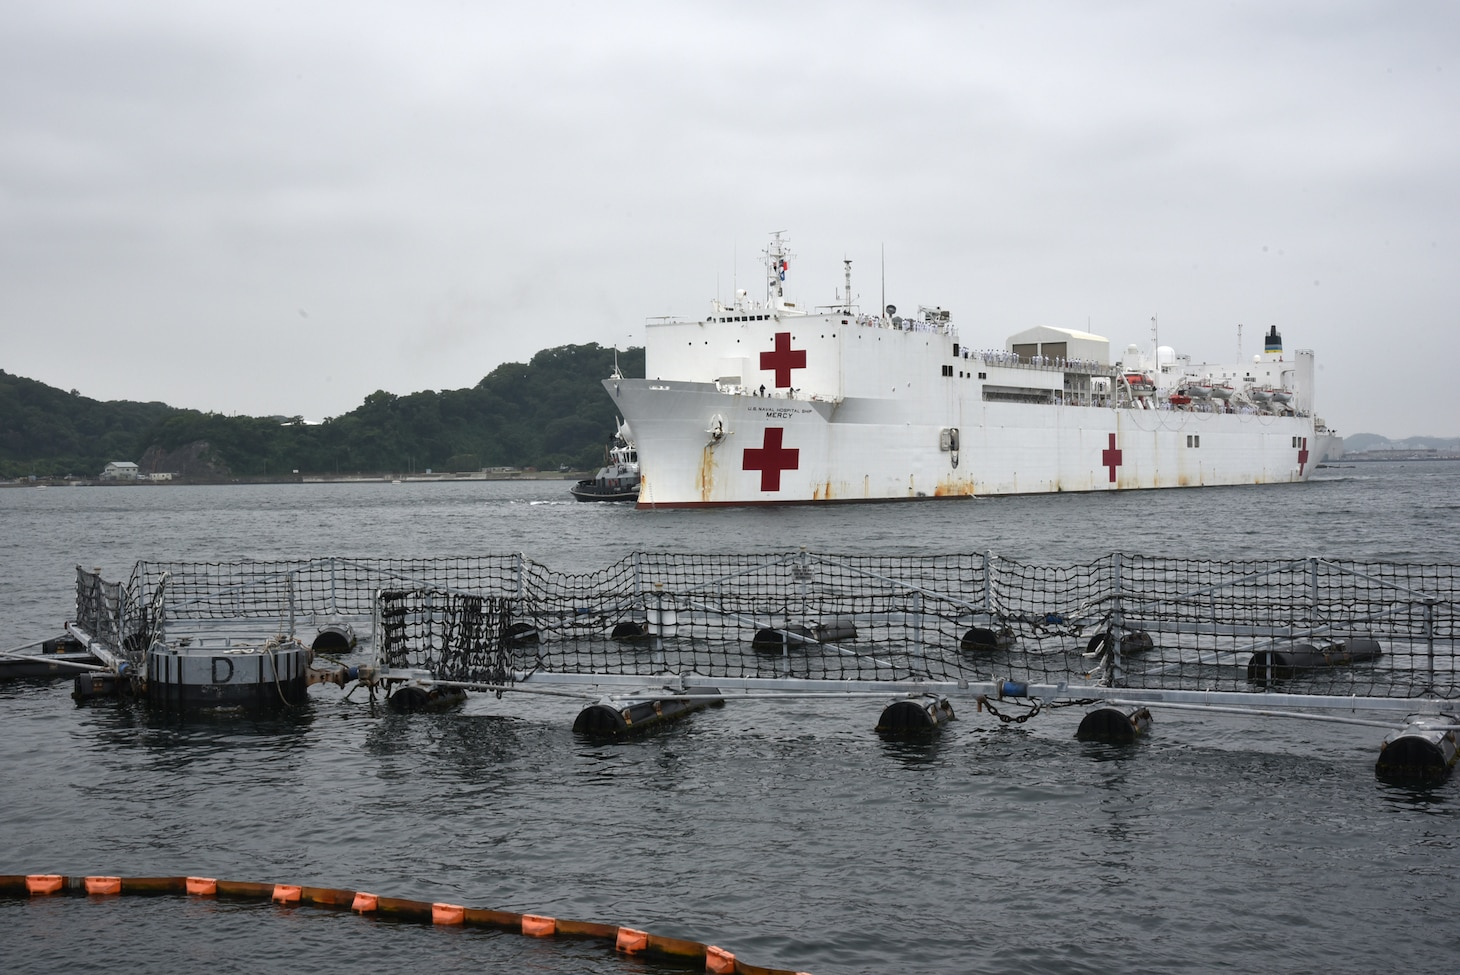 YOKOSUKA, Japan (June 10, 2018)  -- USNS Mercy (T-AH 19) arrives in Yokosuka, Japan as part of Goodwill port visit June 10. USNS Mercy is making port visits to Yokosuka and Tokyo to promote relationships between U.S. Navy Sailors and Japanese citizens through cultural exchange and bilateral training.